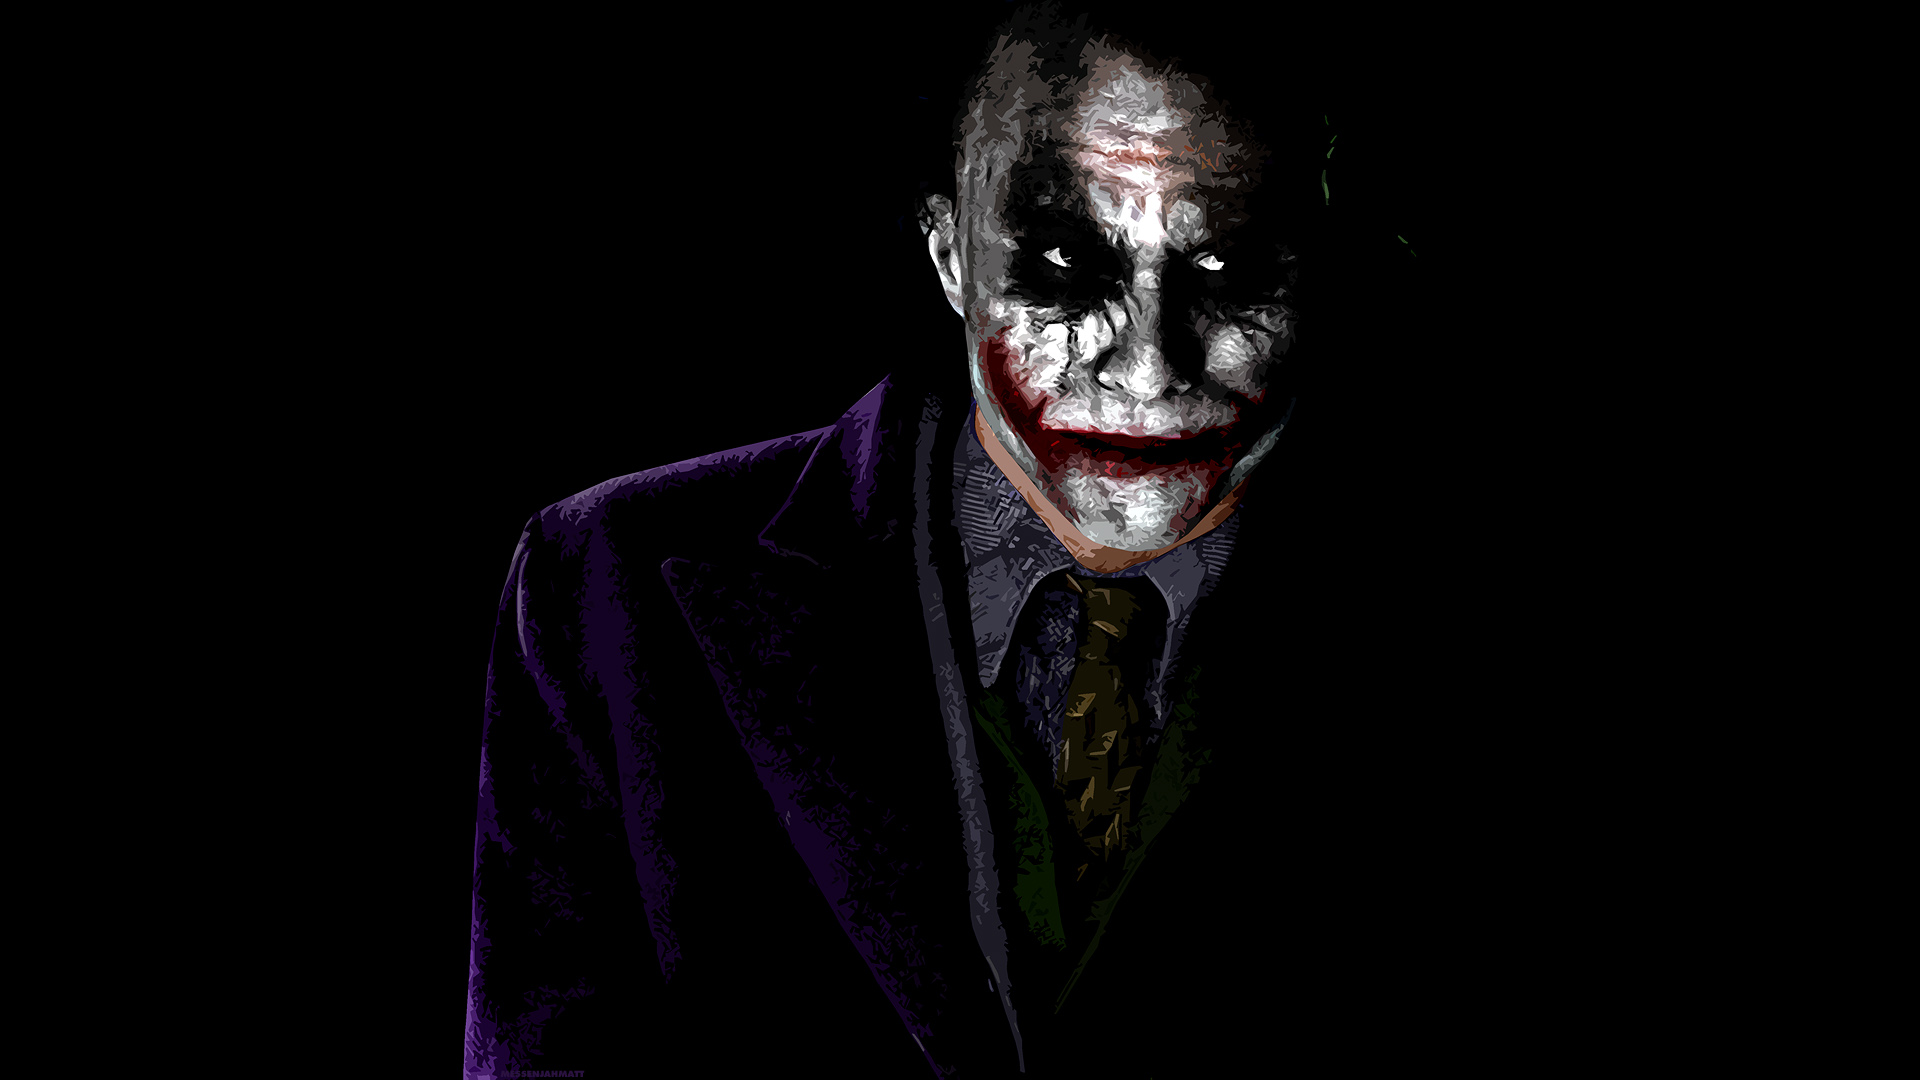 joker   The Joker Wallpaper 28092865 1920x1080